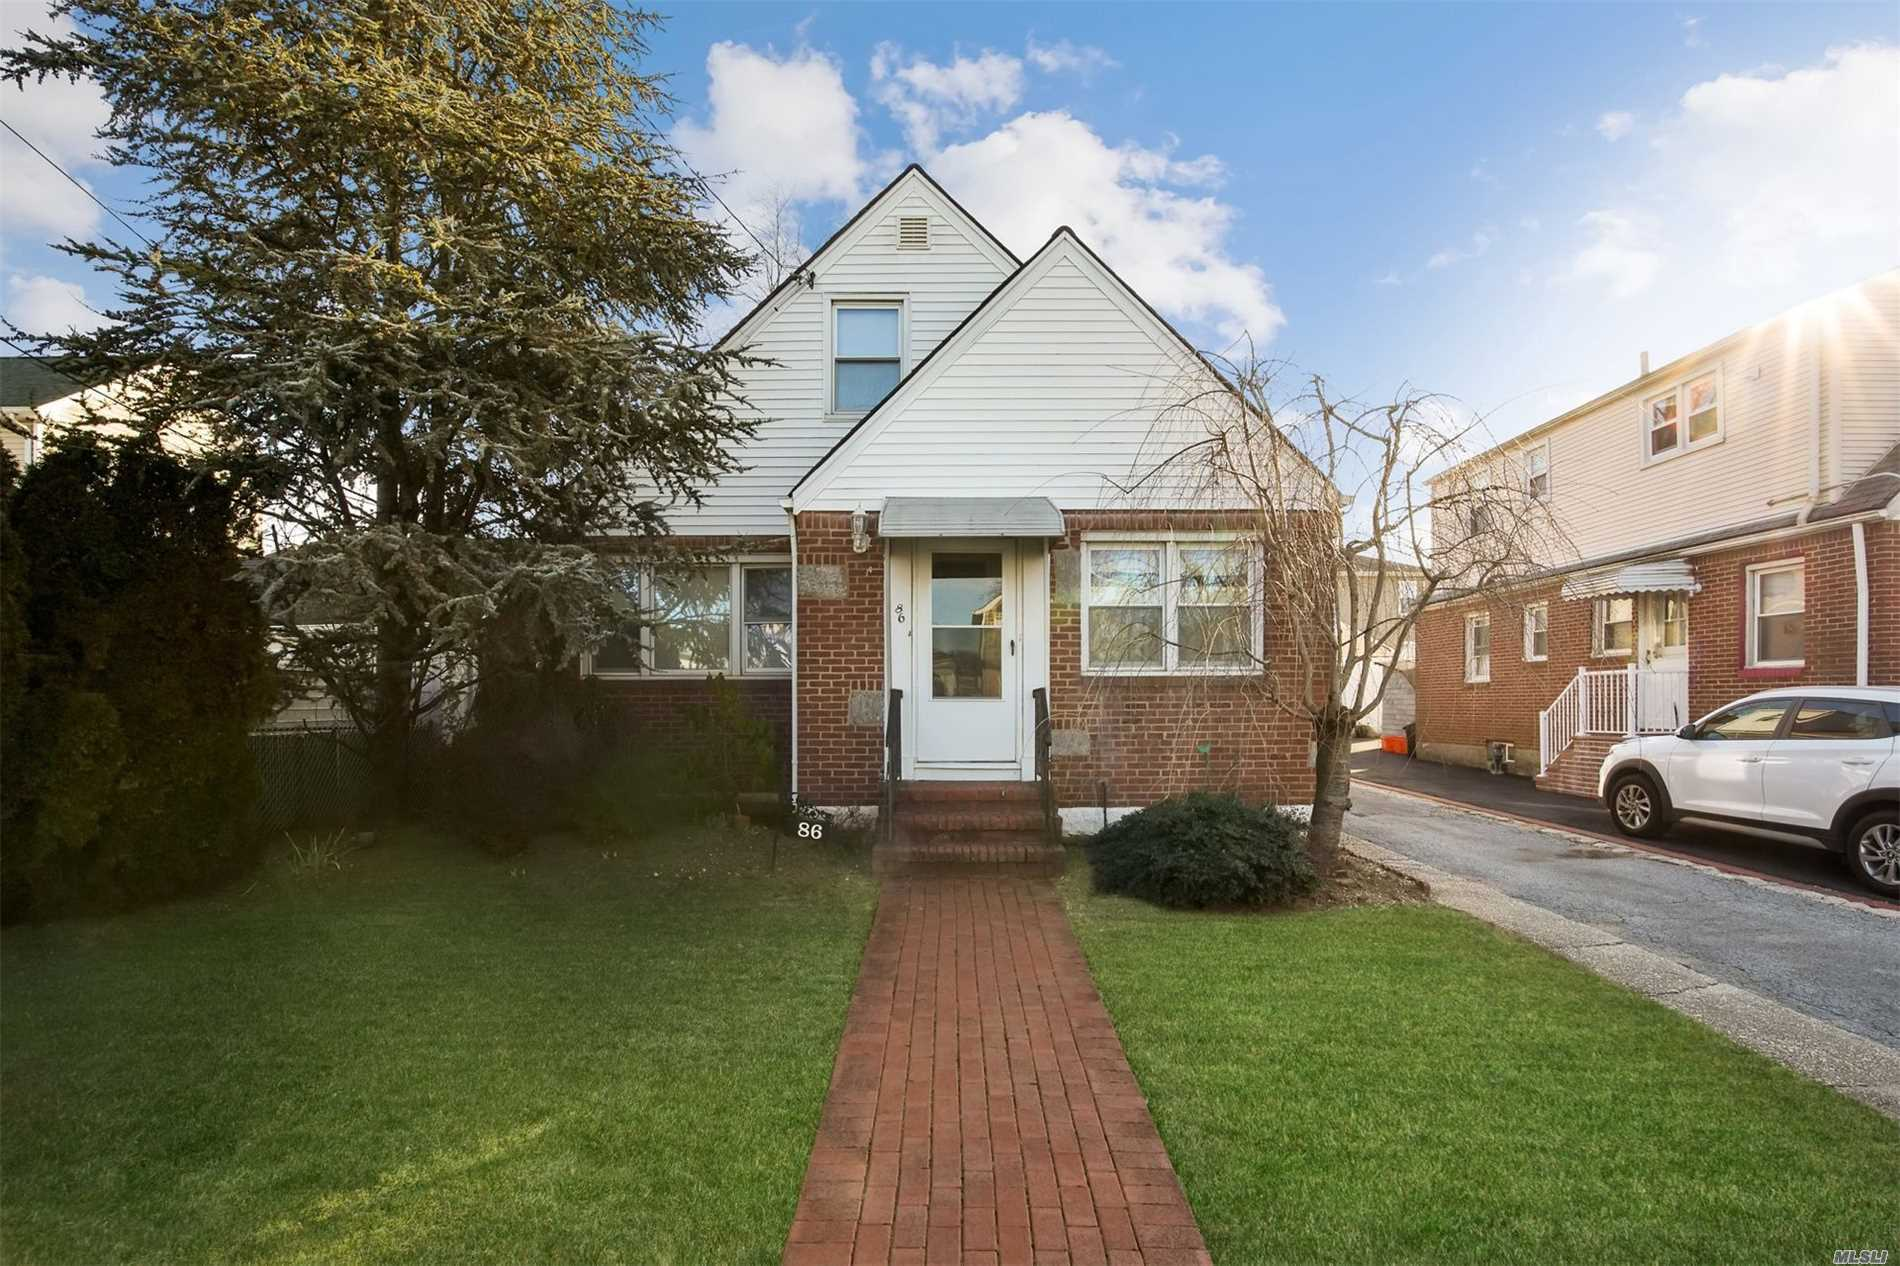 Great Home In The Heart Of Franklin Square. Three Bedrooms And 2.5 Bathrooms. Master On The First Floor. Full Basement / Part Finished. Private Driveway And Detached Garage. Entertainment & Shopping Along Hempstead Turnpike.